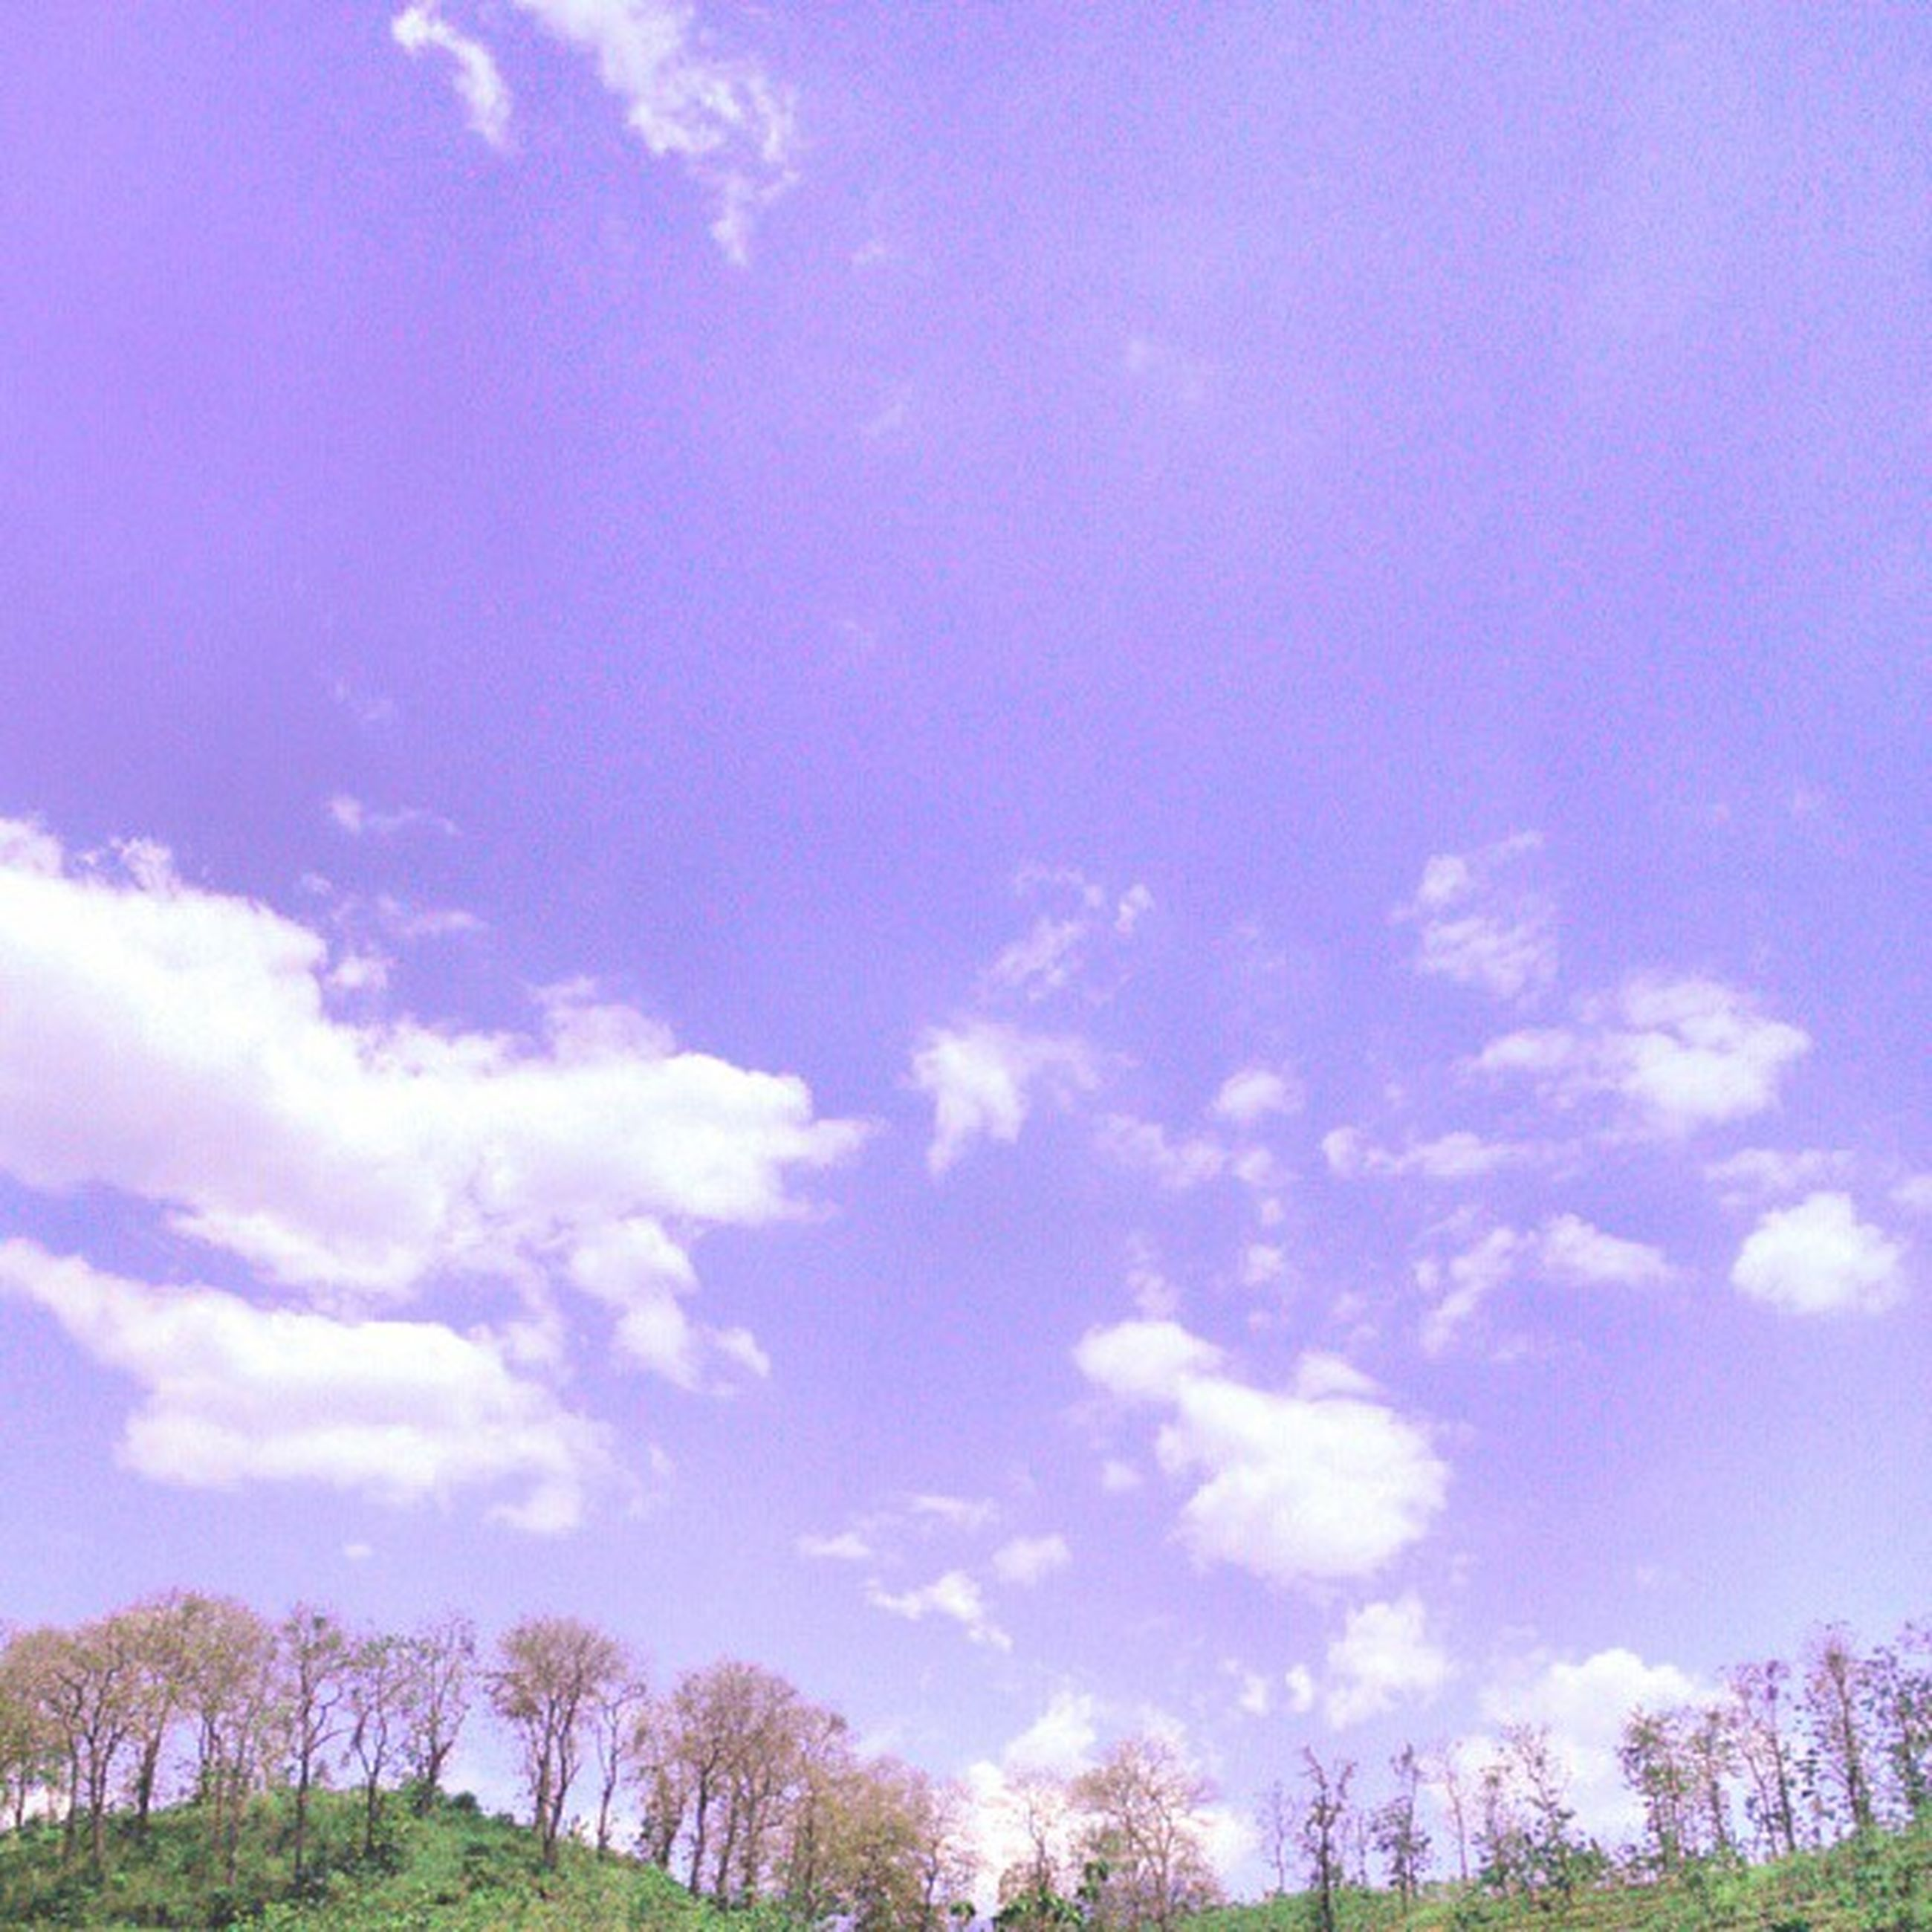 sky, low angle view, tree, tranquility, blue, beauty in nature, cloud - sky, tranquil scene, scenics, nature, cloud, growth, idyllic, outdoors, cloudy, day, no people, non-urban scene, silhouette, sunlight